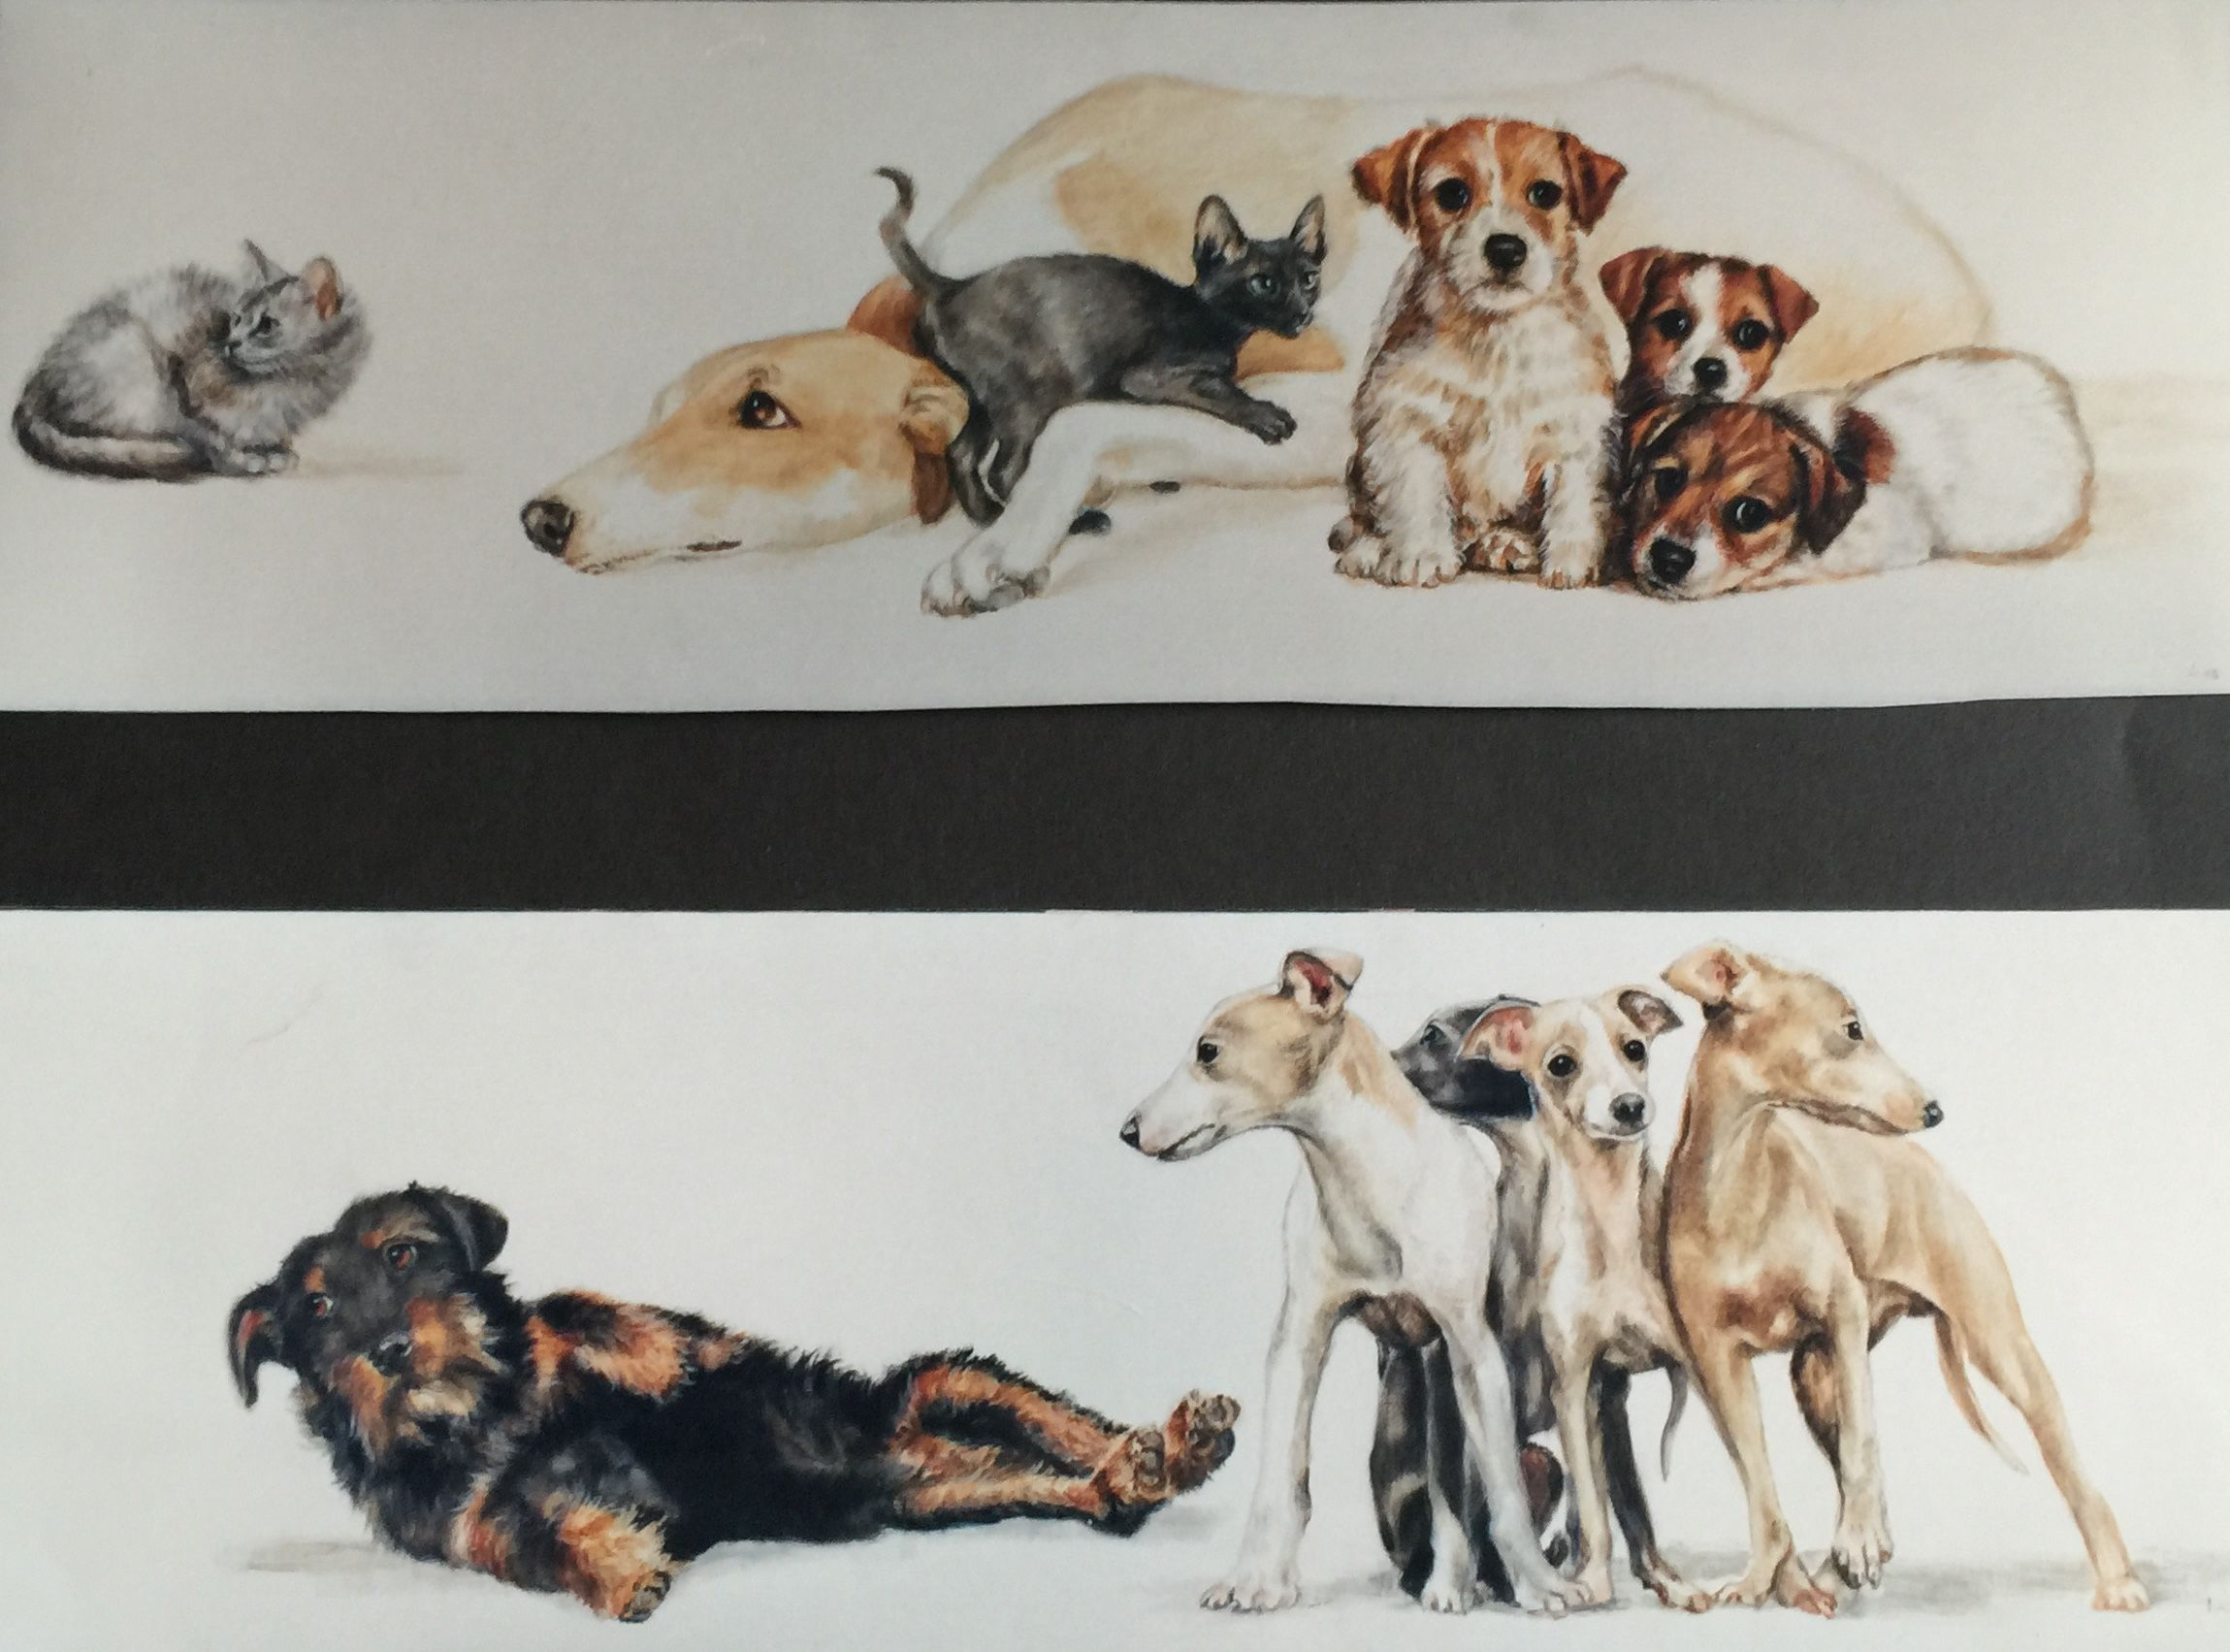 #greyhounds#Hounds, #dogs Painted by lucillabollati.com